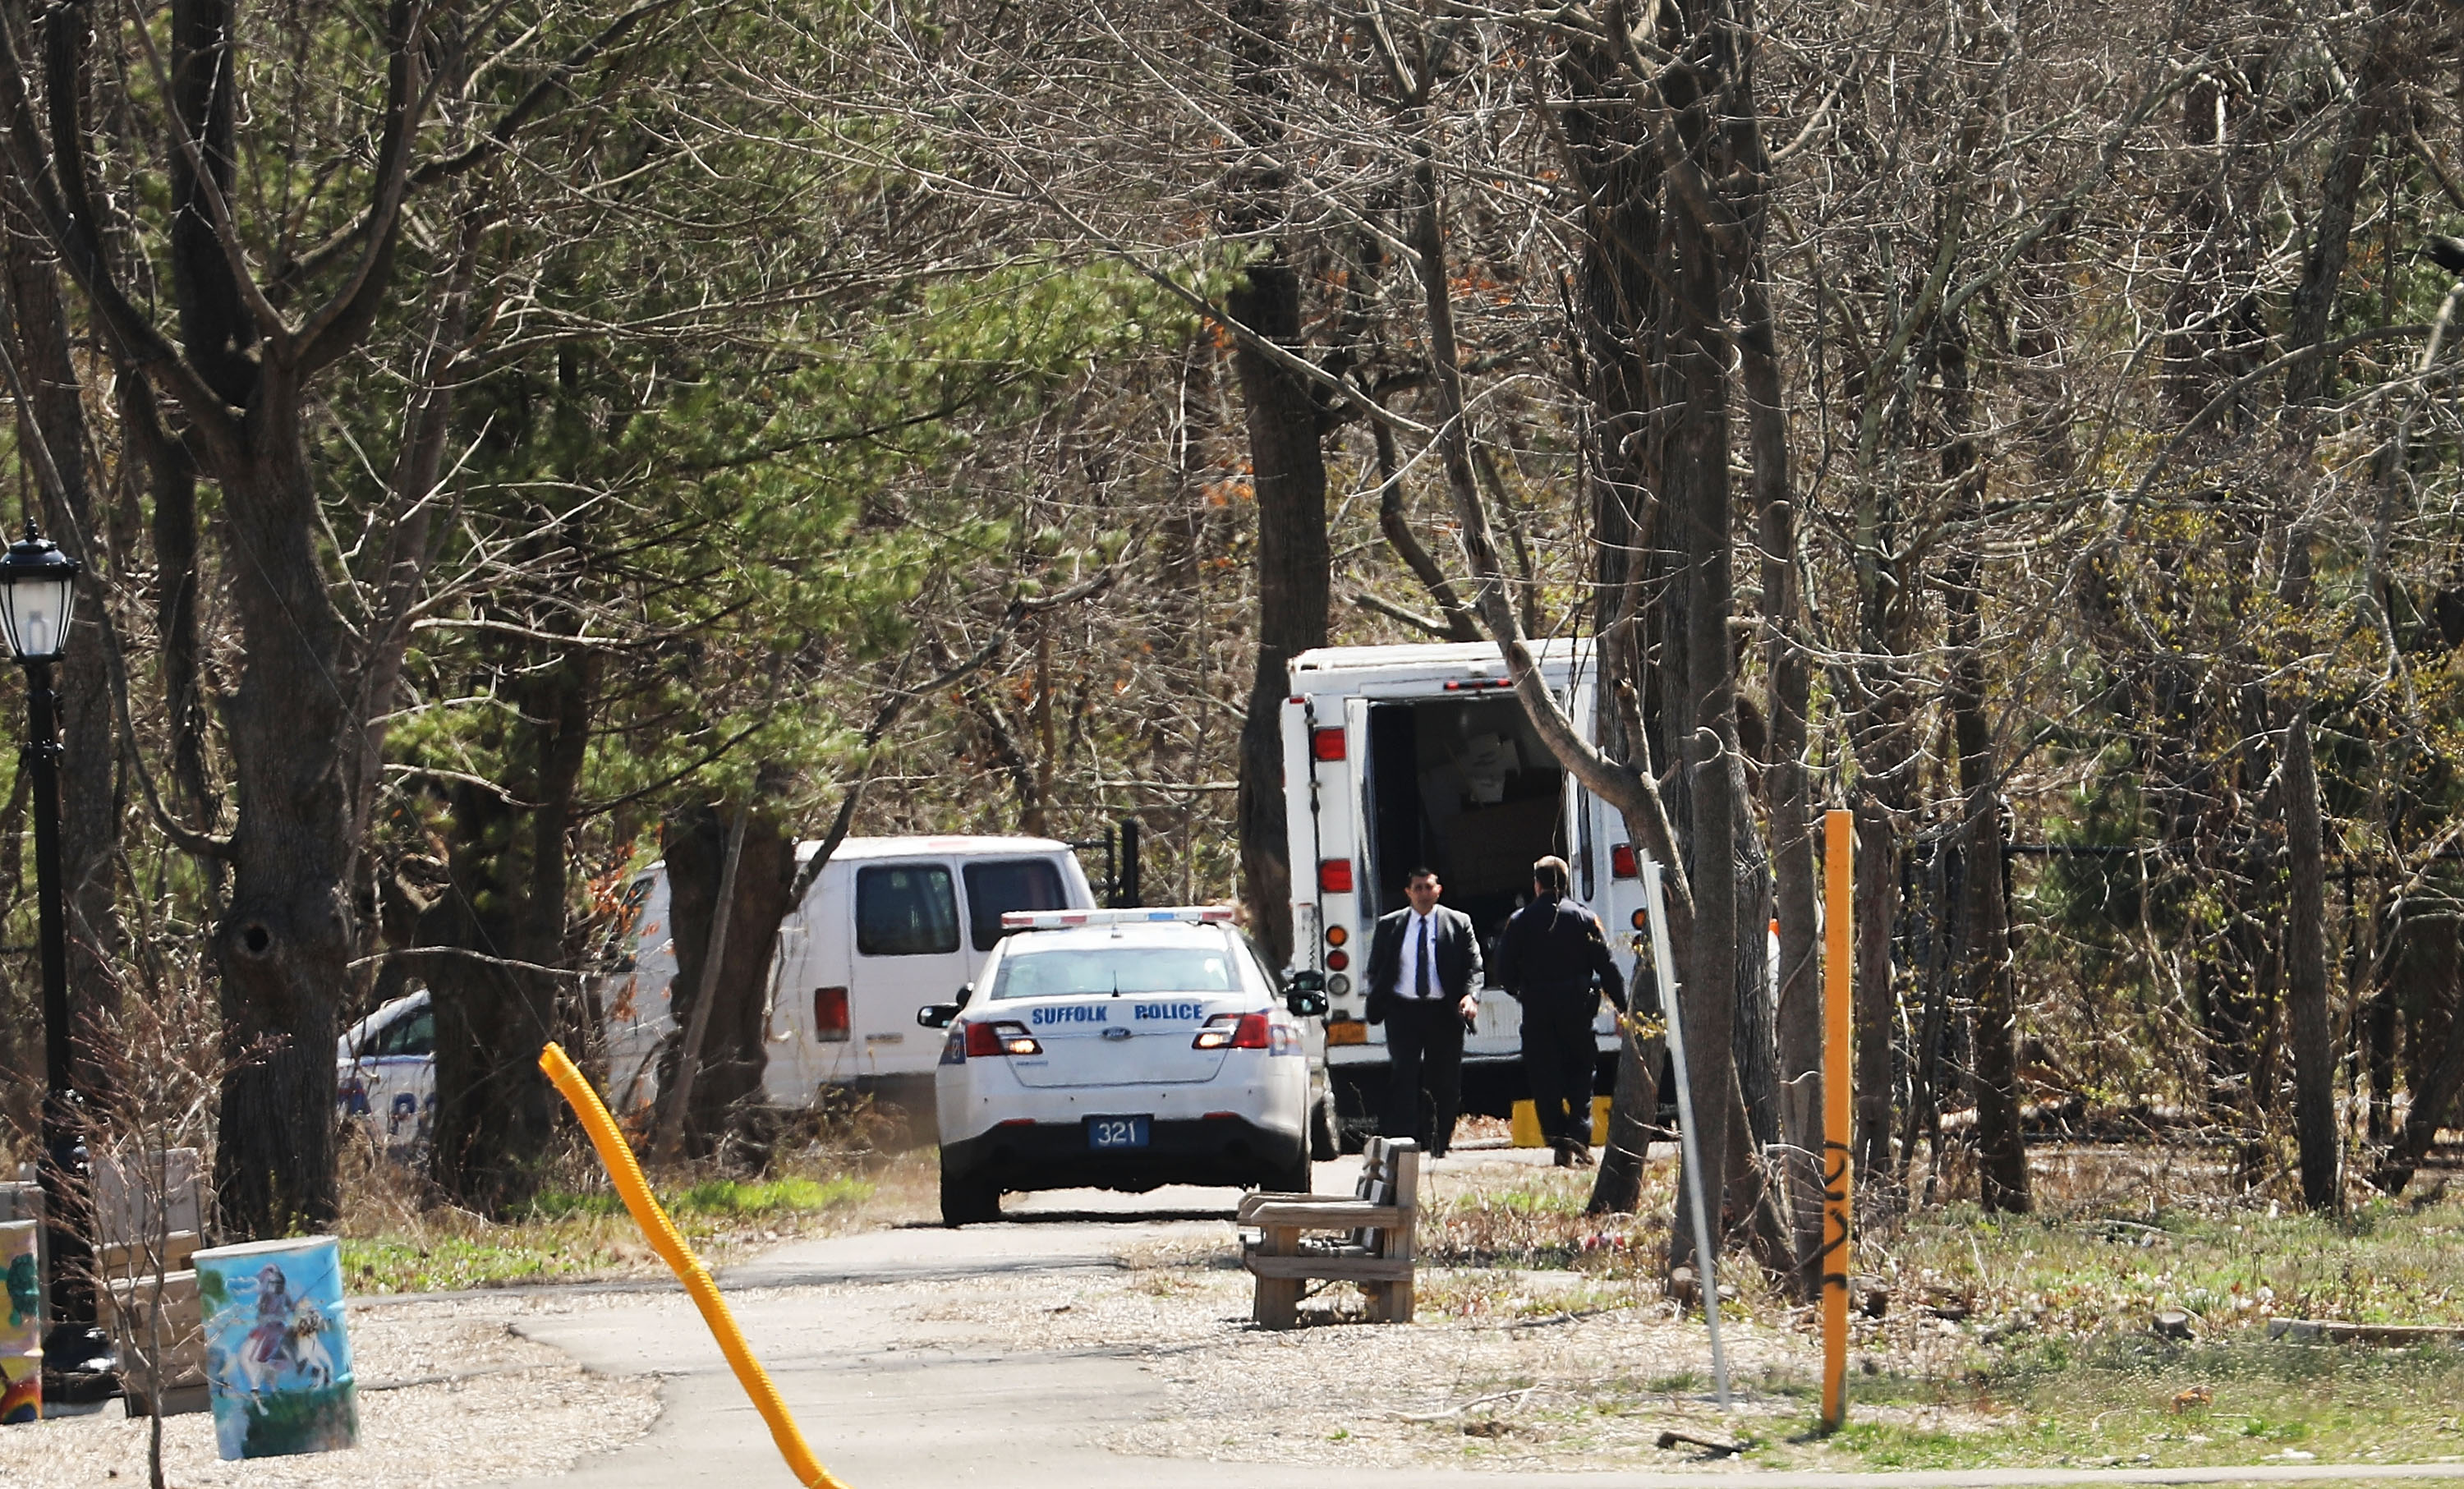 Police investigate the site where four young men were found murdered in a park in Central Islip, Long Island, on April 13. (Spencer Platt/Getty Images)